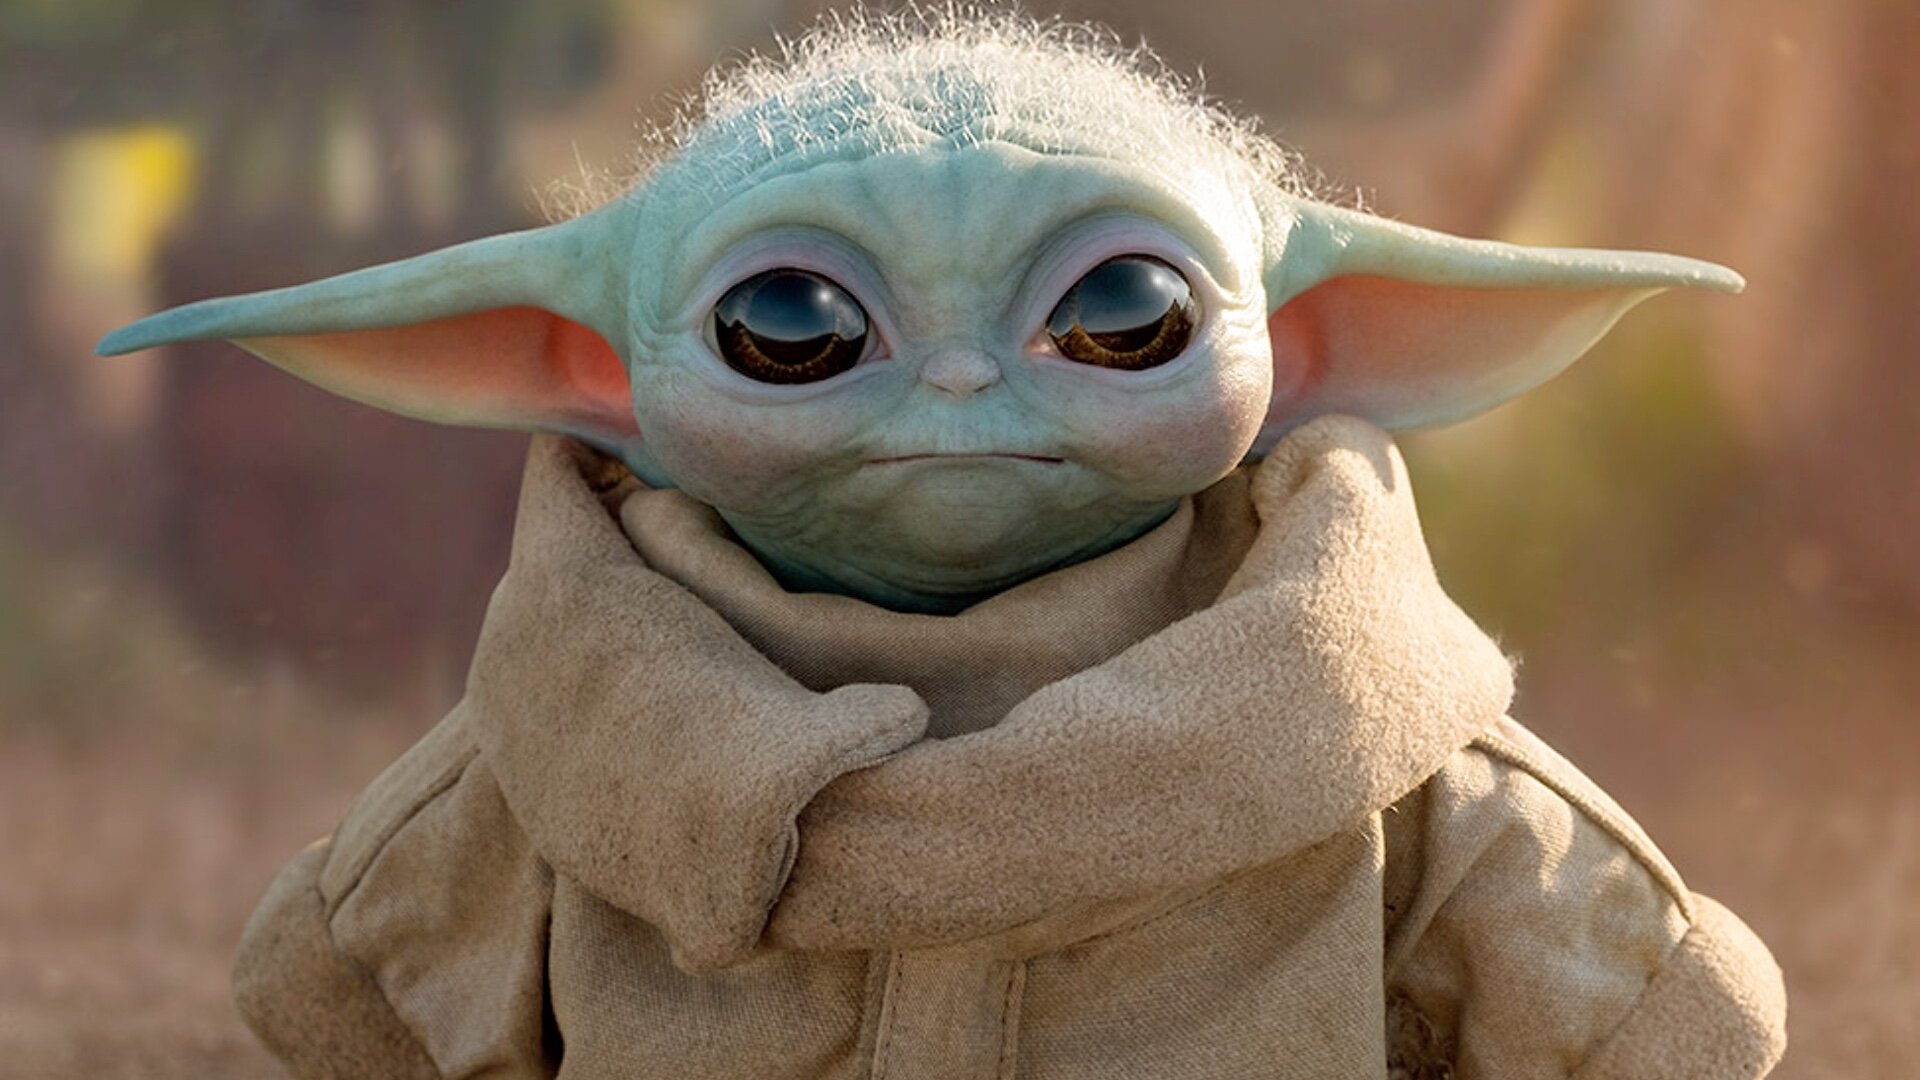 Sideshow Collectibles Reveals Its Amazing Life Sized Baby Yoda Collectible Geektyrant